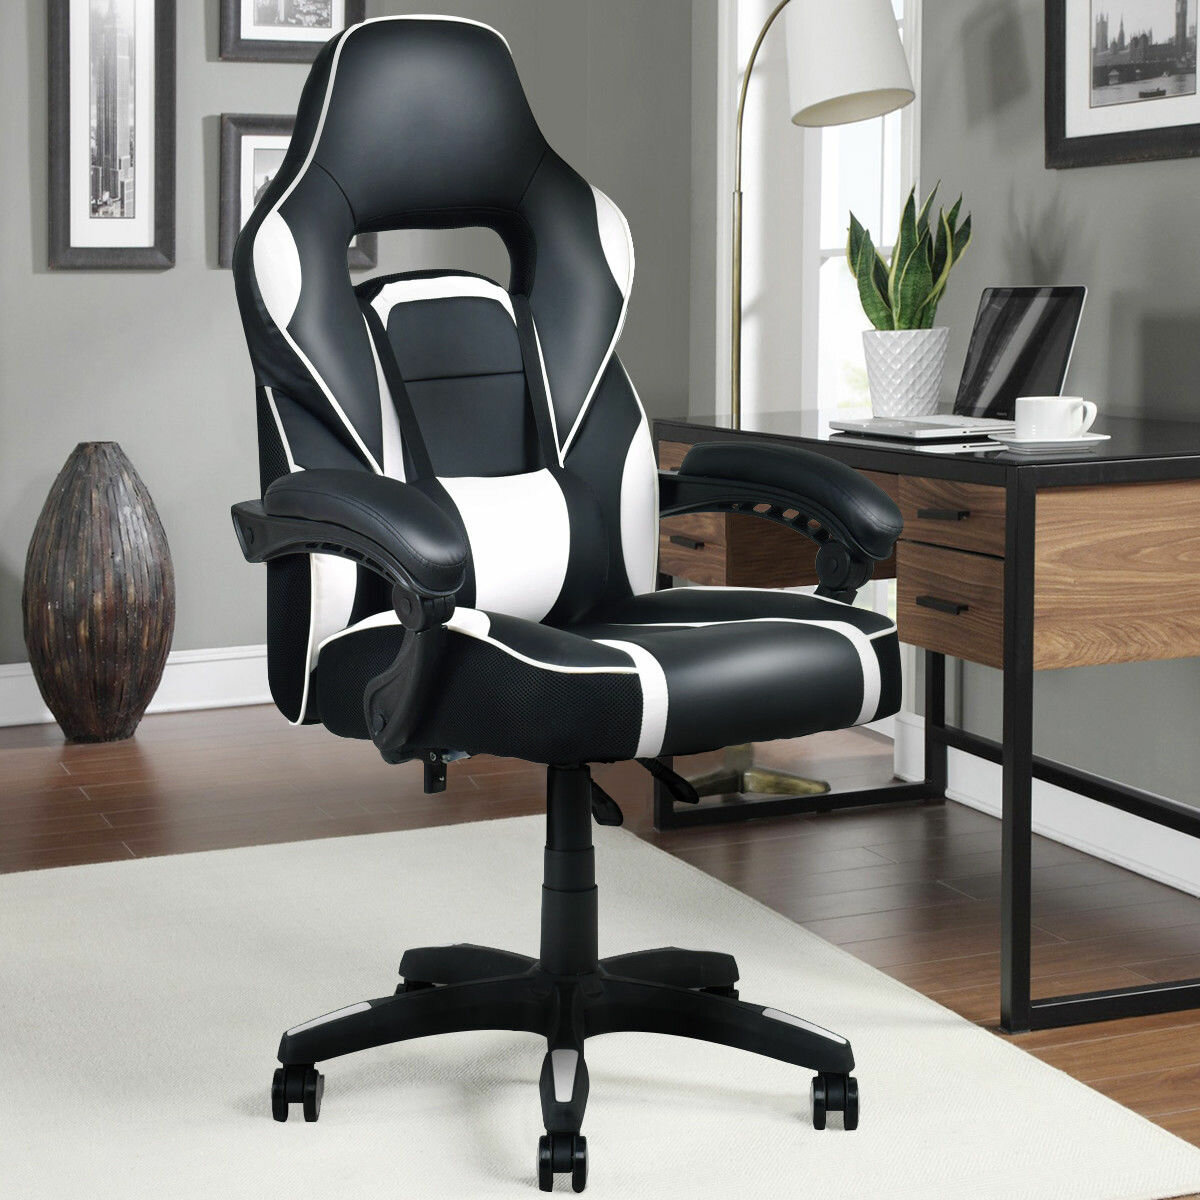 Gaming Chair Vs Office Chair Which To Choose Wayfair